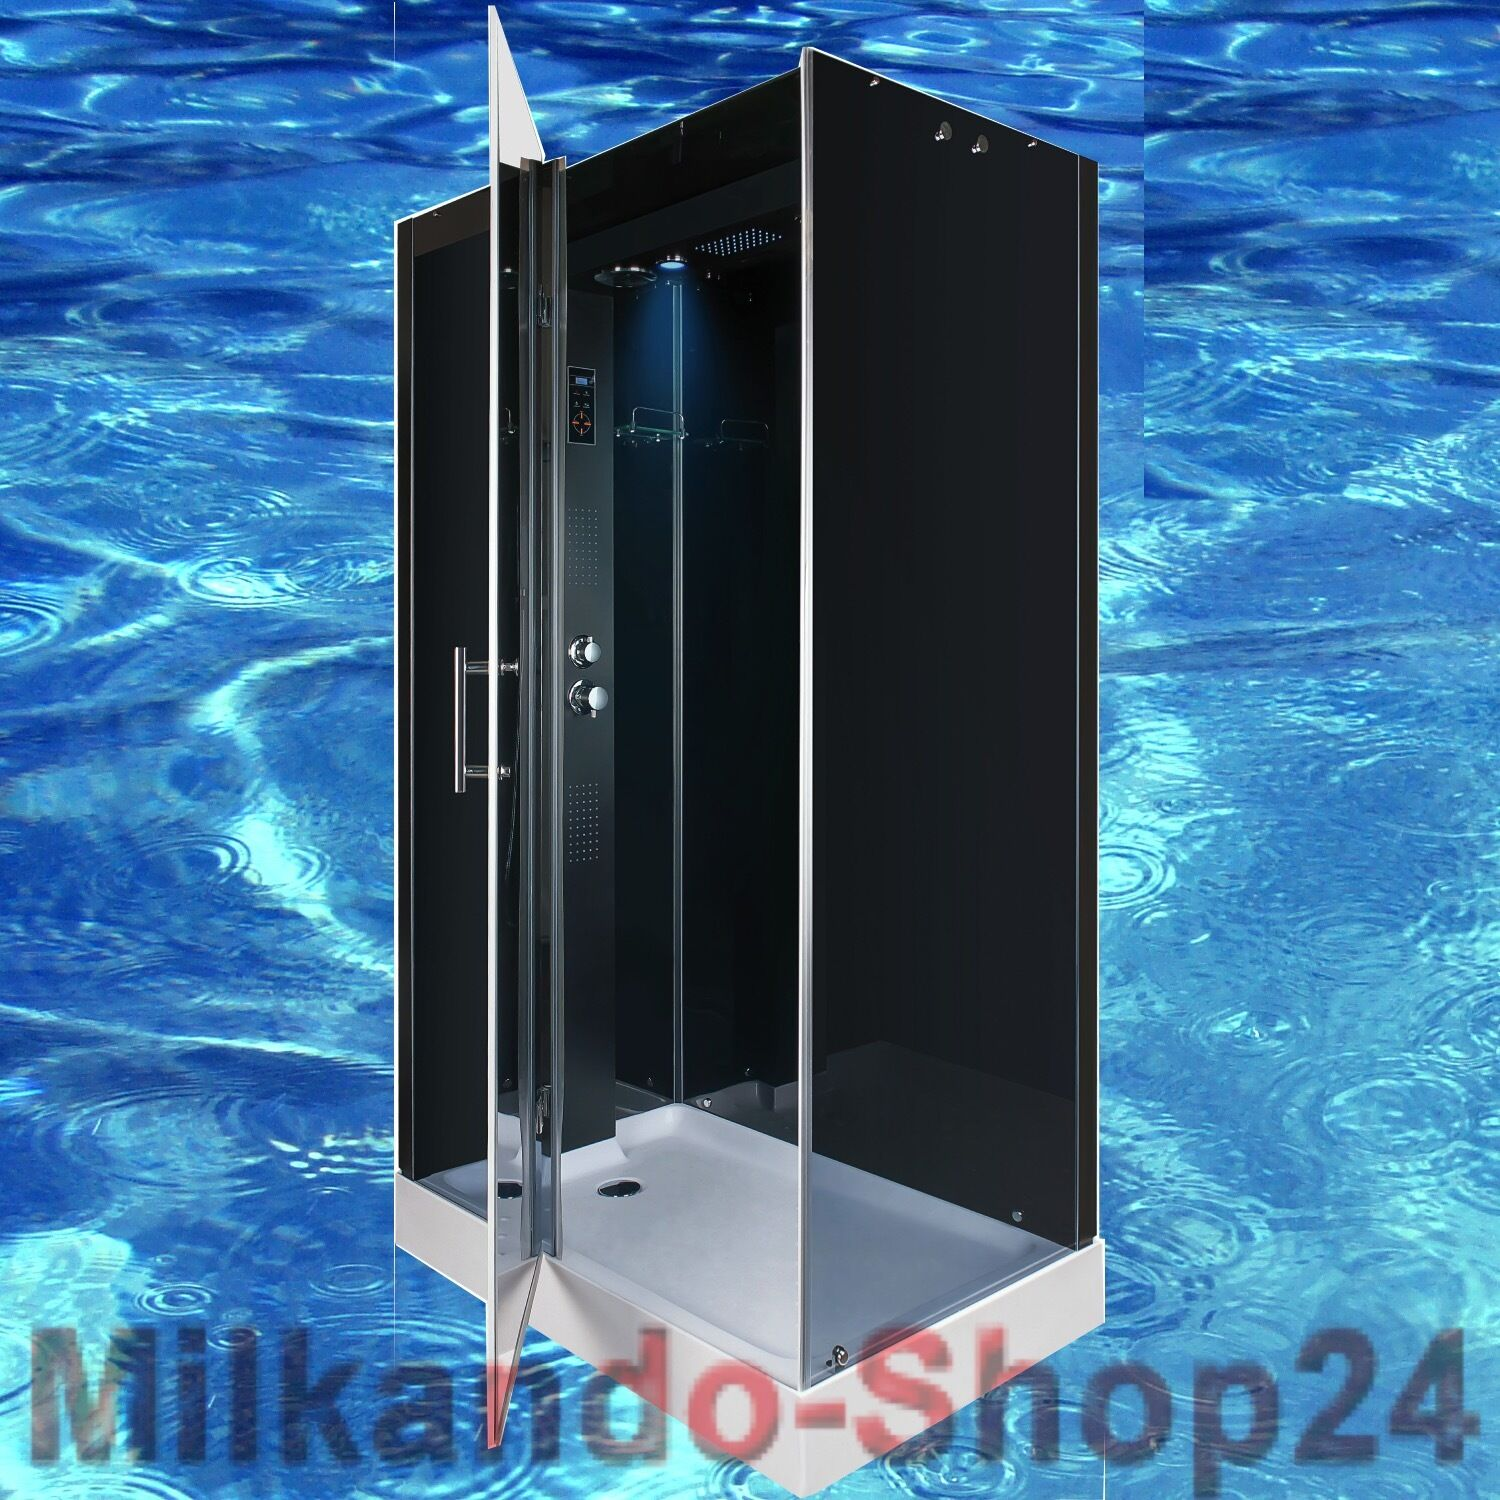 duschtempel fertigdusche duschkabine echt esg glas 120 x 80 x 217cm dusche spa ebay. Black Bedroom Furniture Sets. Home Design Ideas